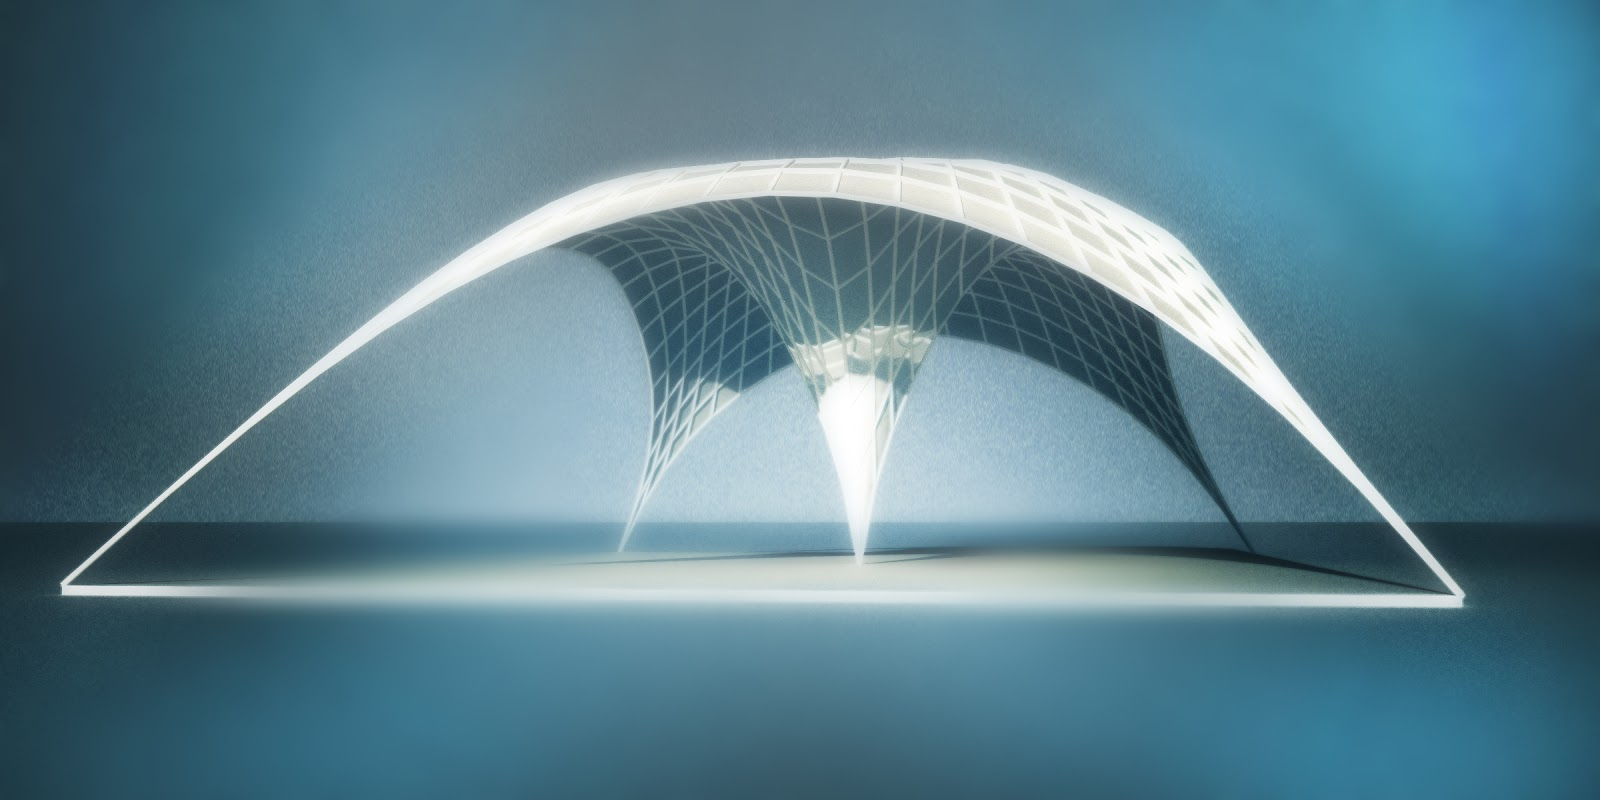 Causa Locuta: Catenary Pavilion - Sketch